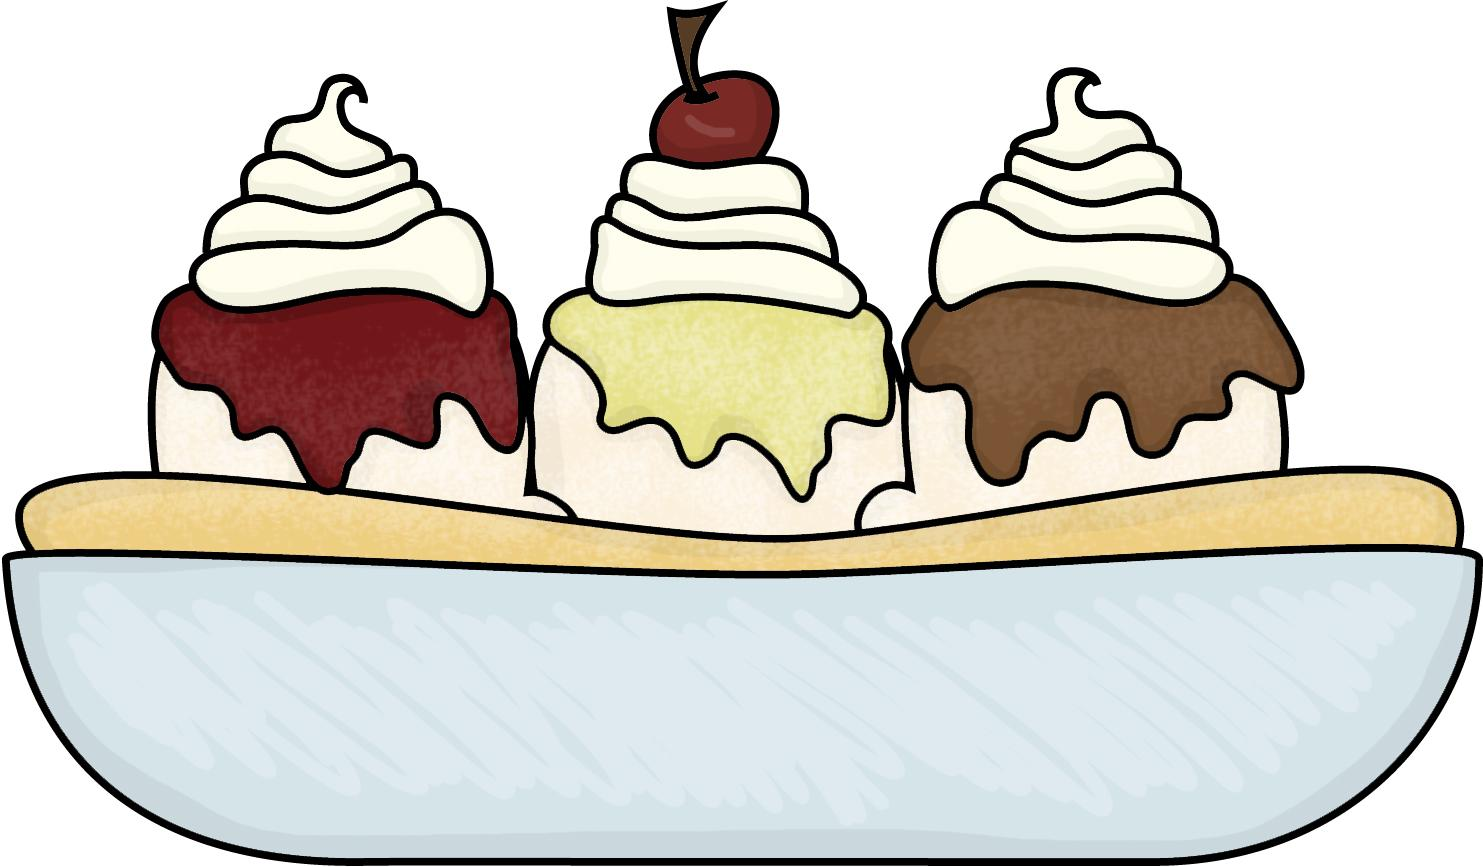 Ice Cream Border